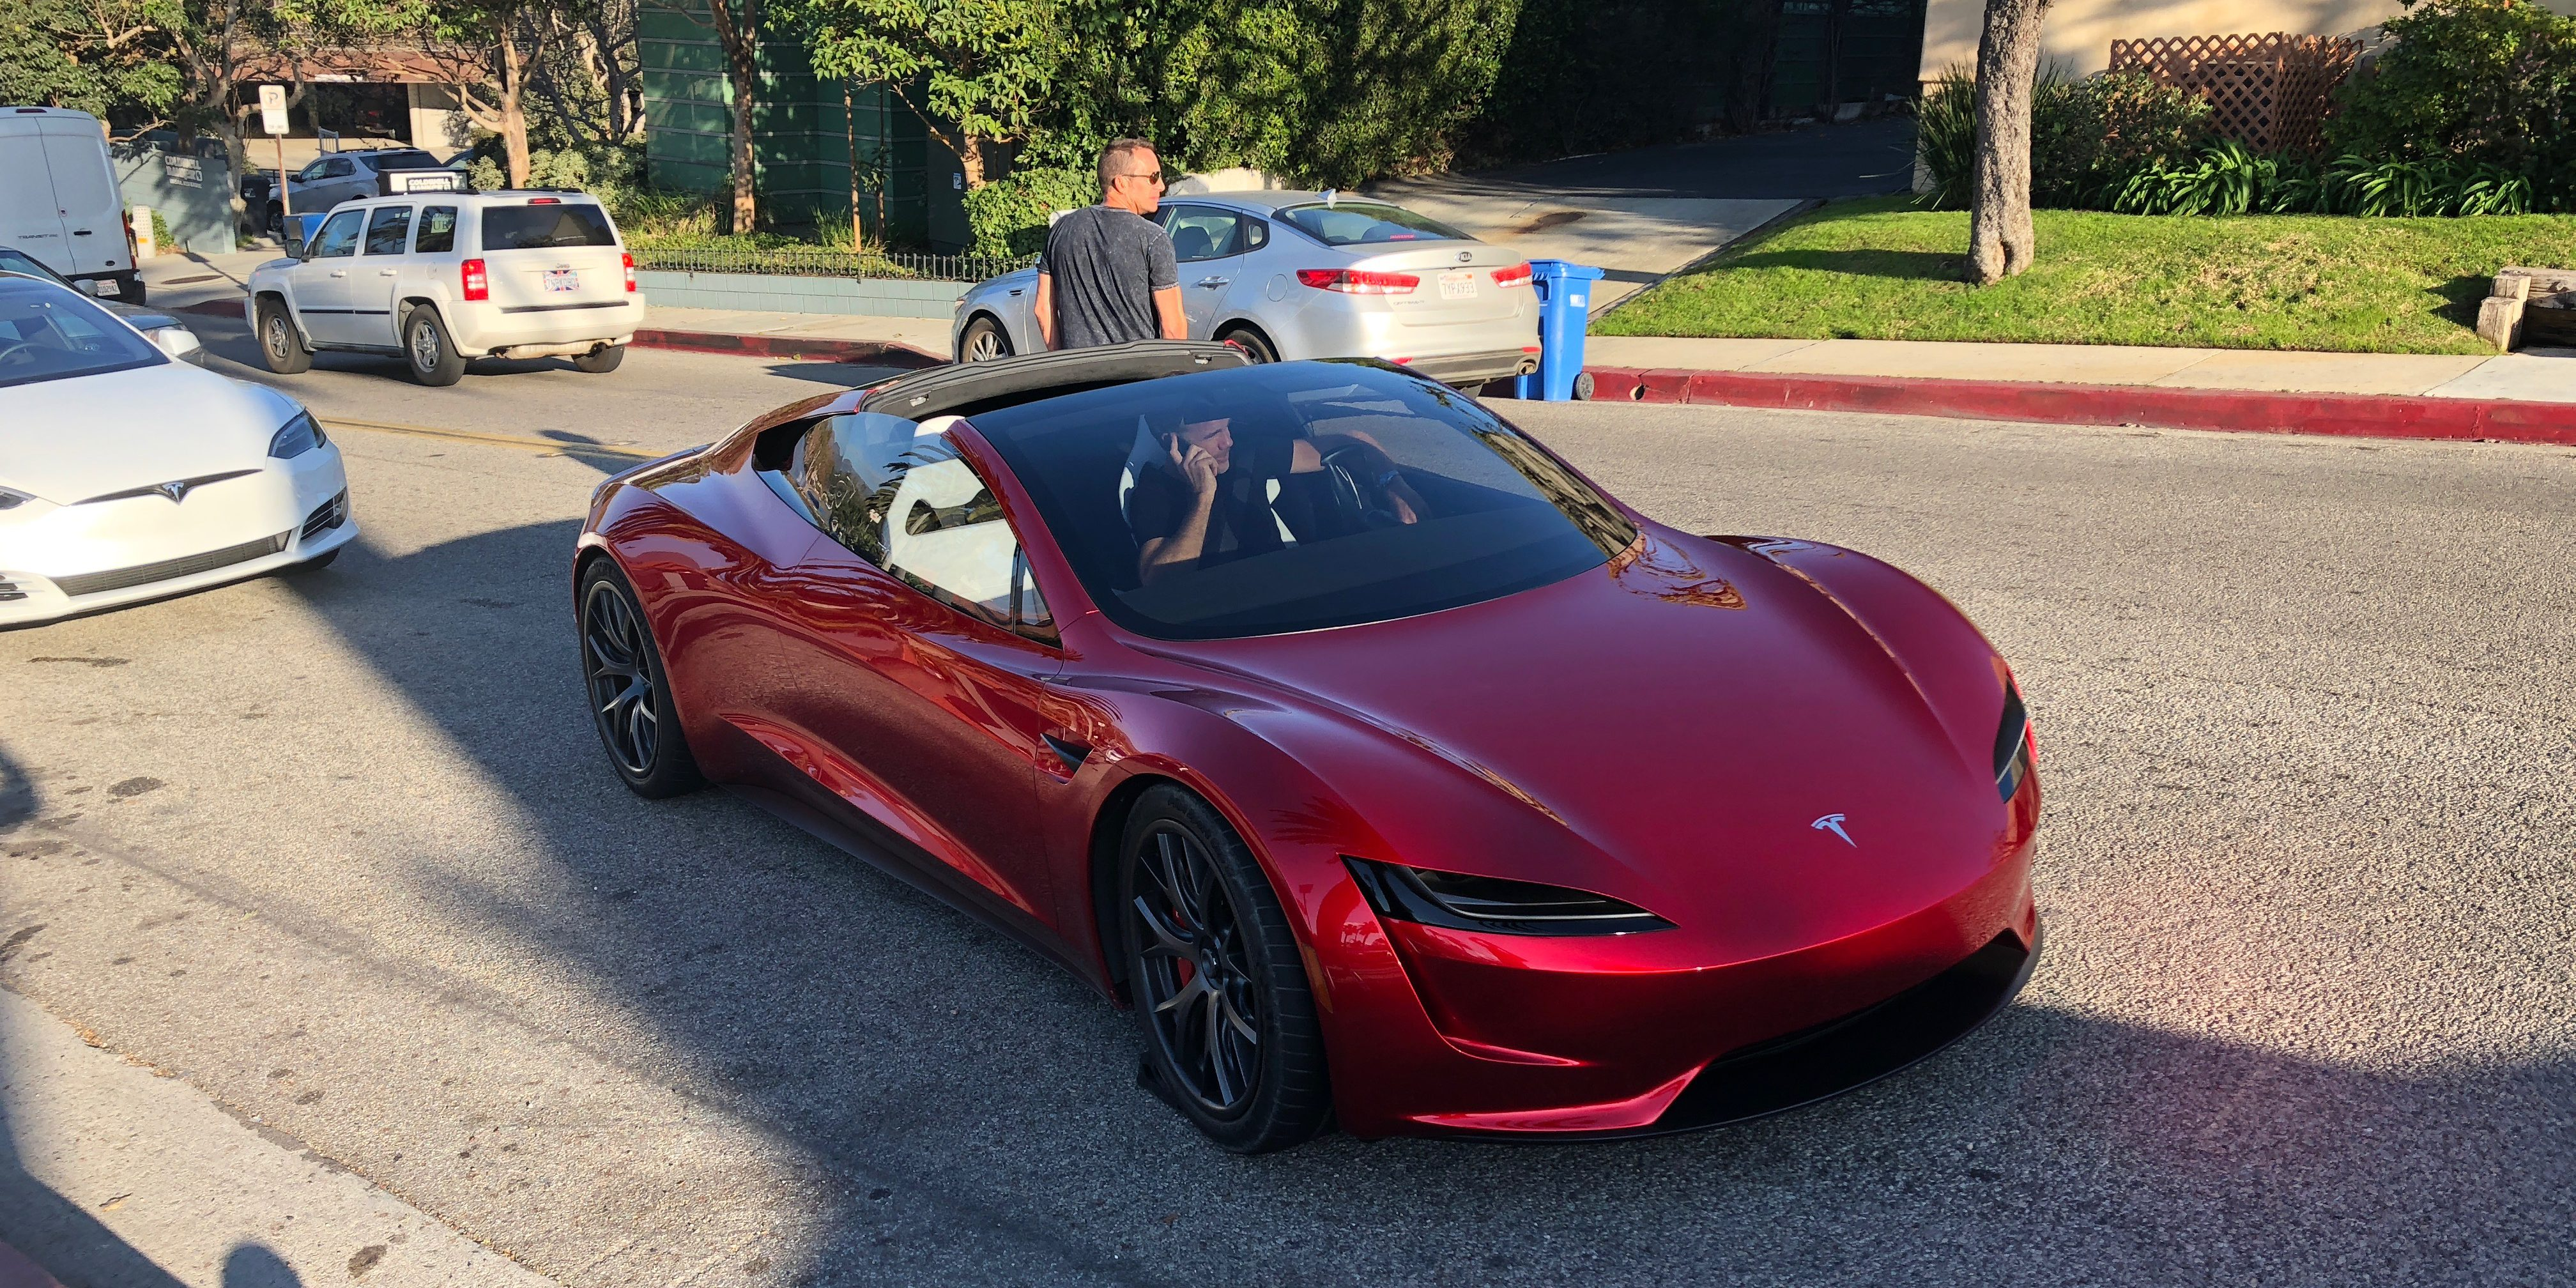 Ferrari Is Working On An Electric Supercar To Compete With The Next Gen Tesla Roadster